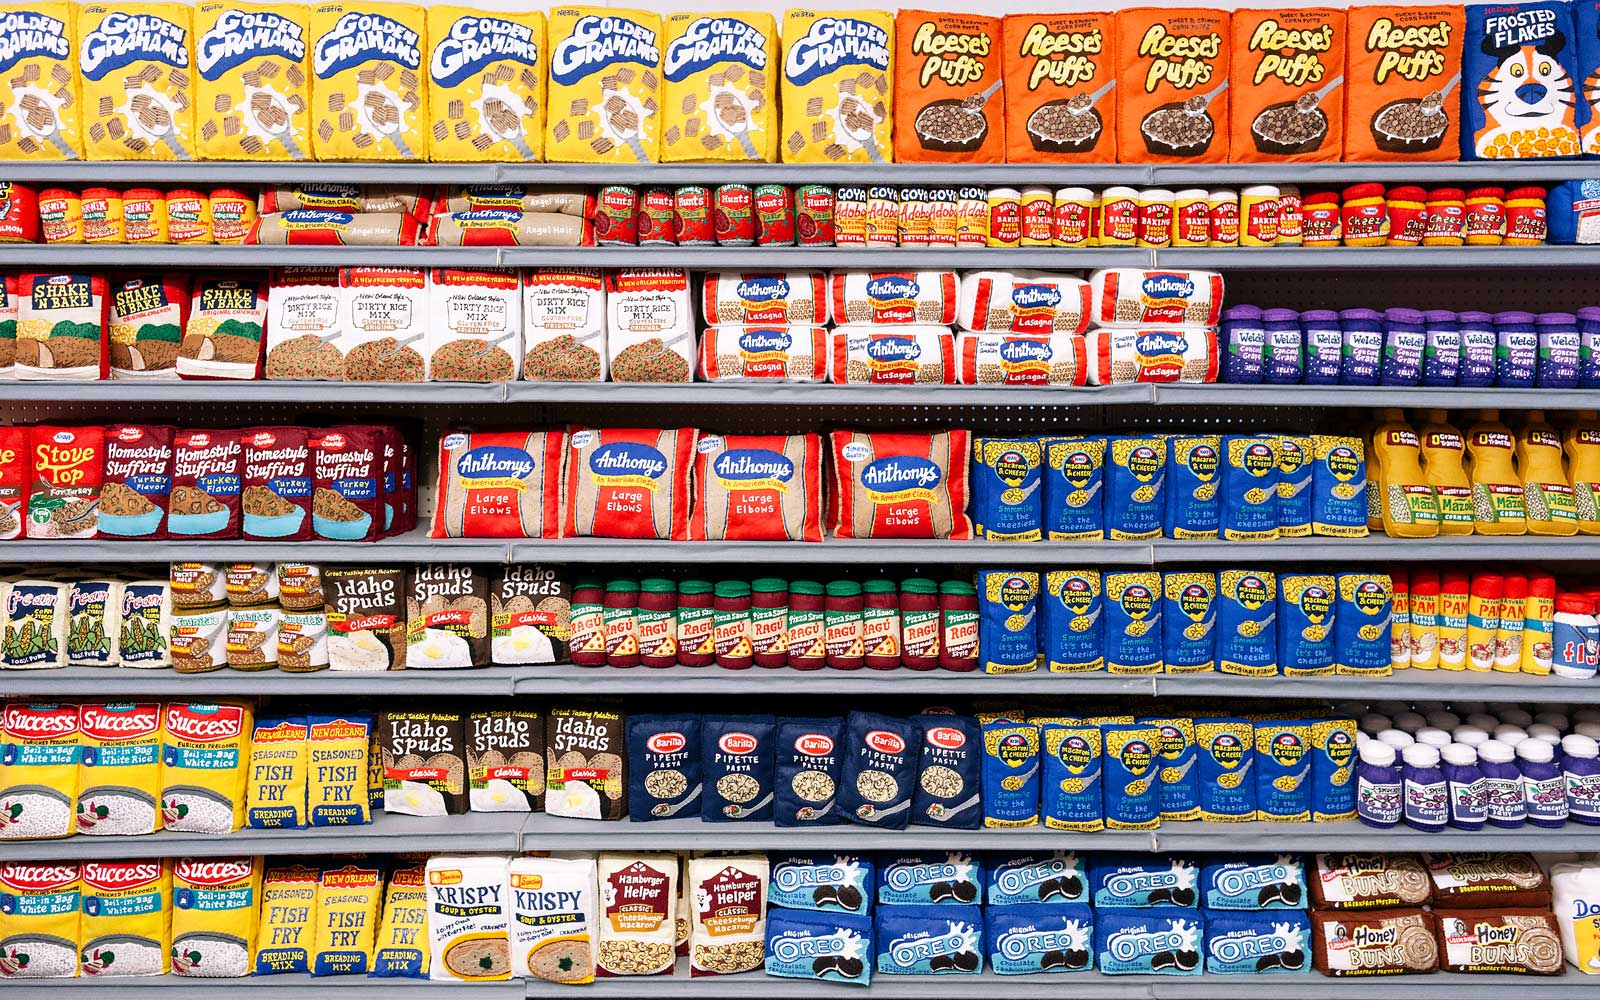 This Los Angeles Grocery Store Has 31,000 Items—and They're All Made of Felt